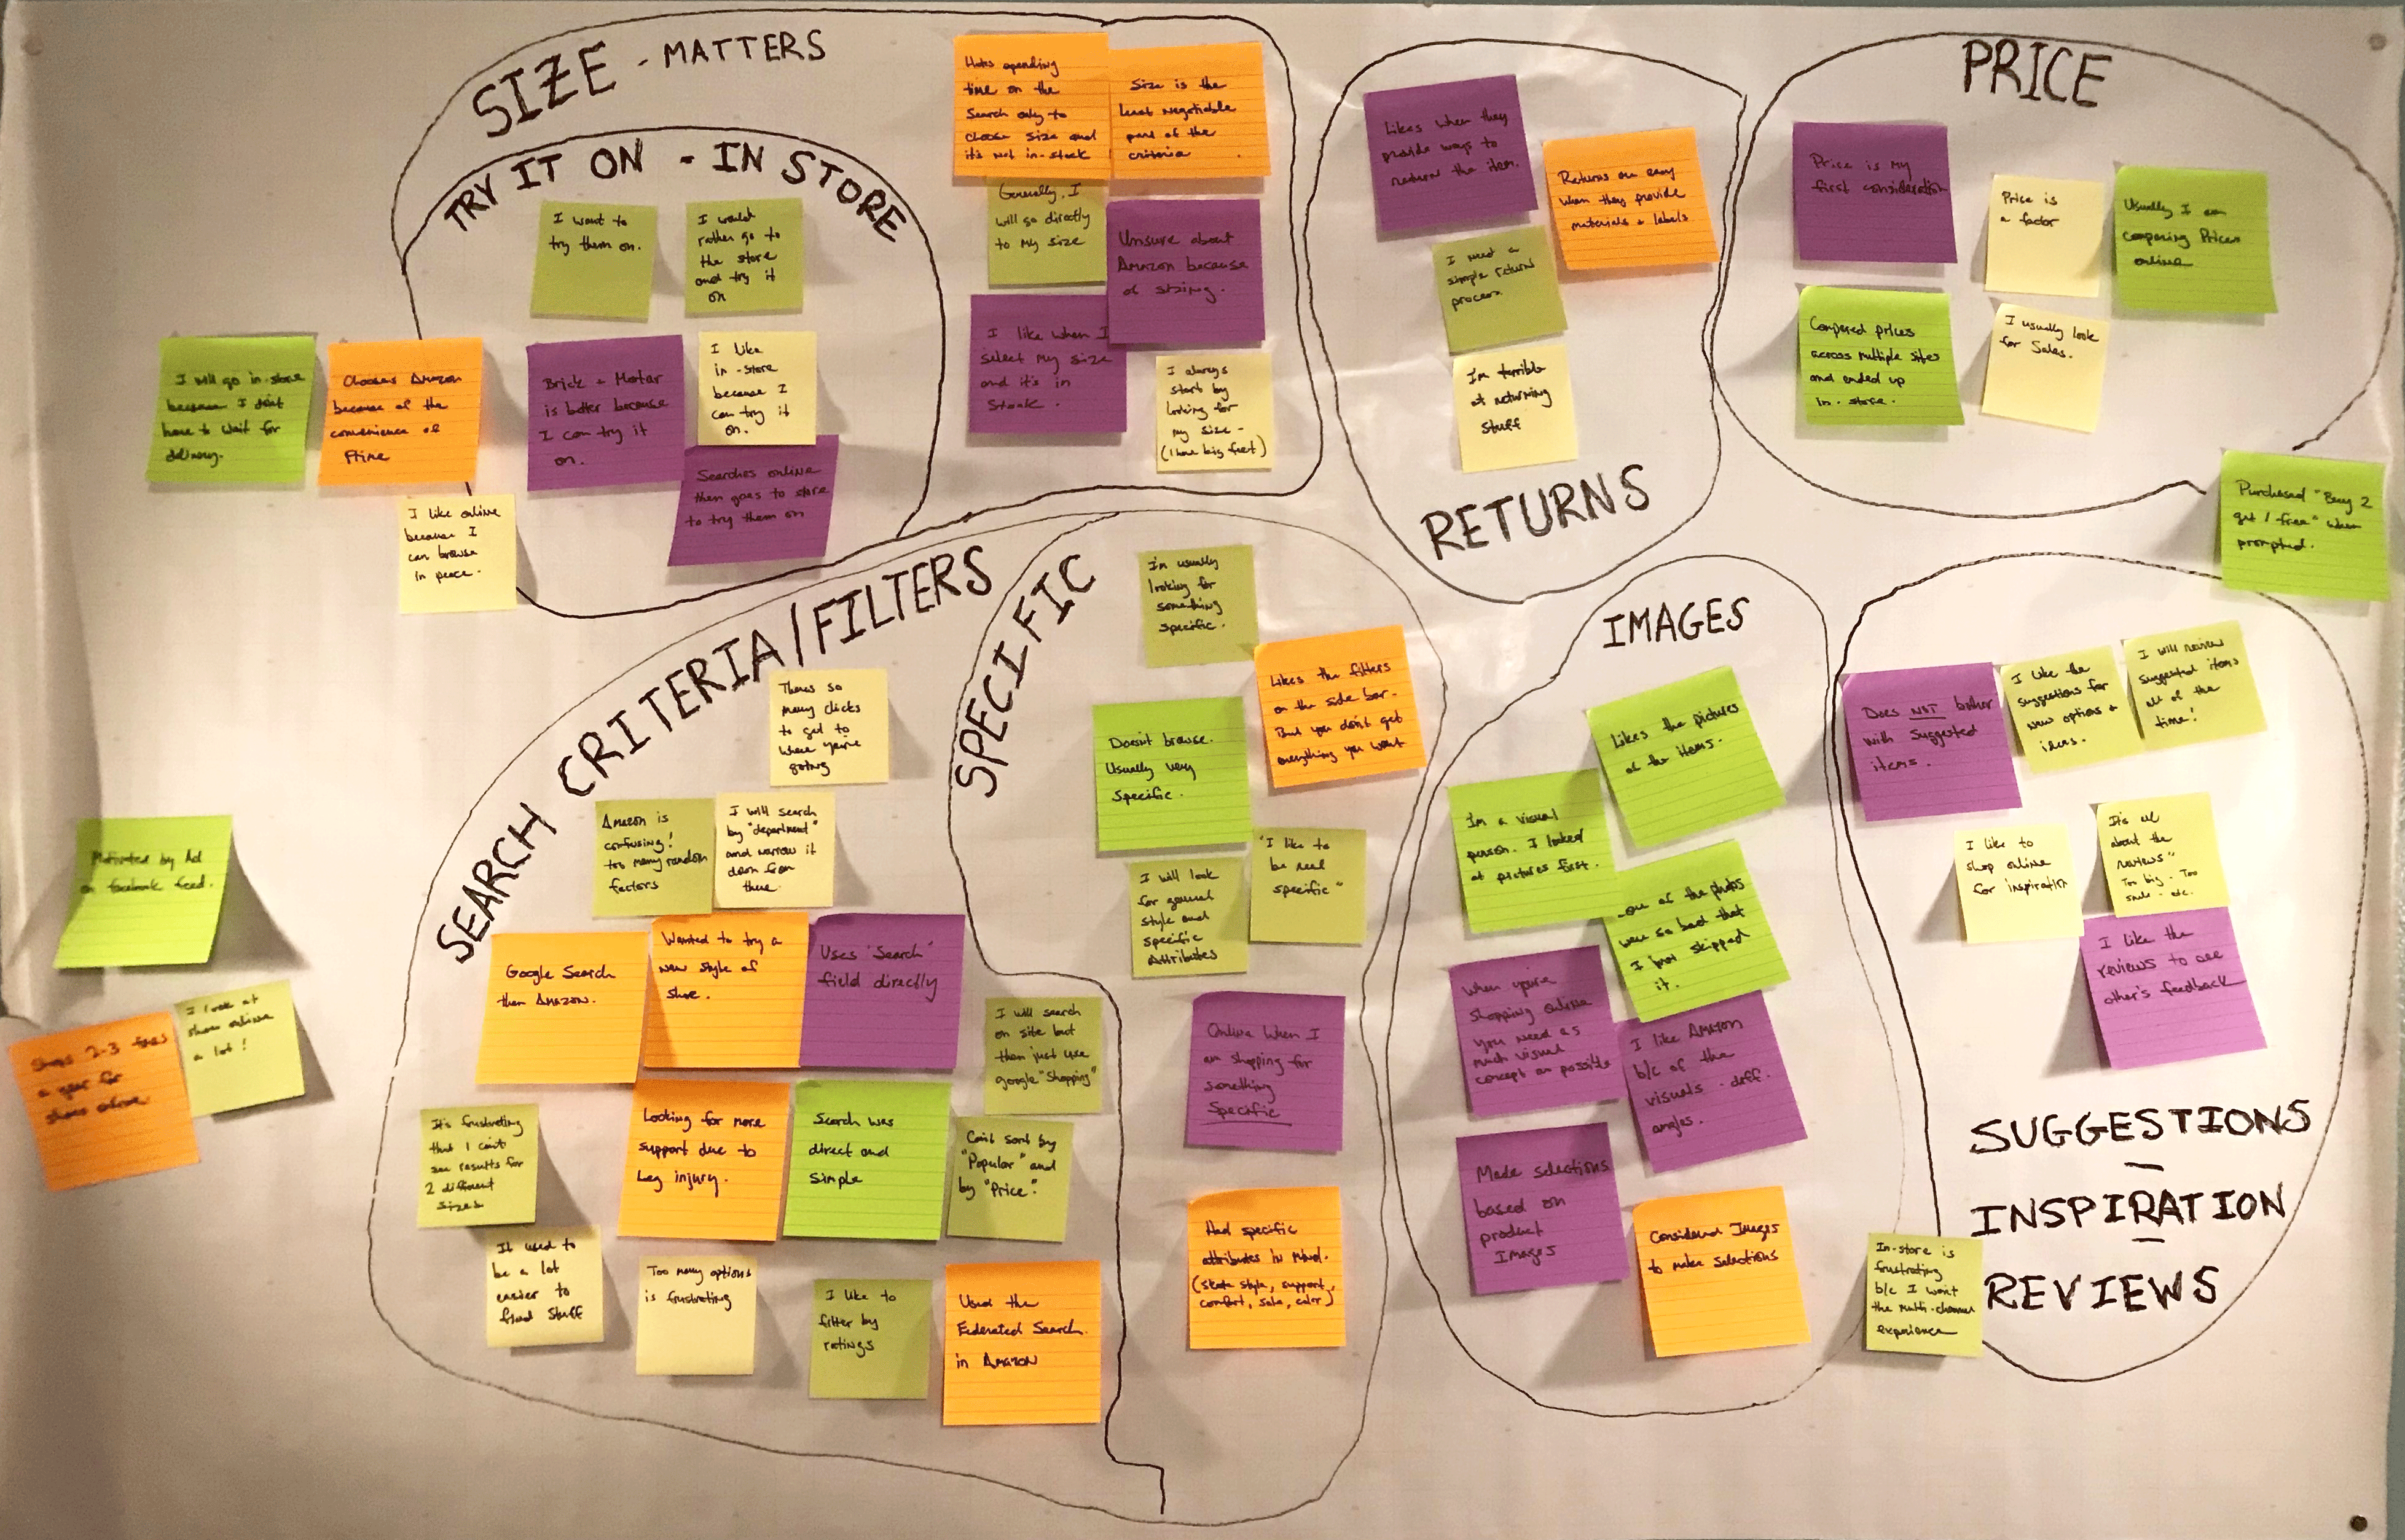 Affinity map of UX Design User Research for e-commerce site